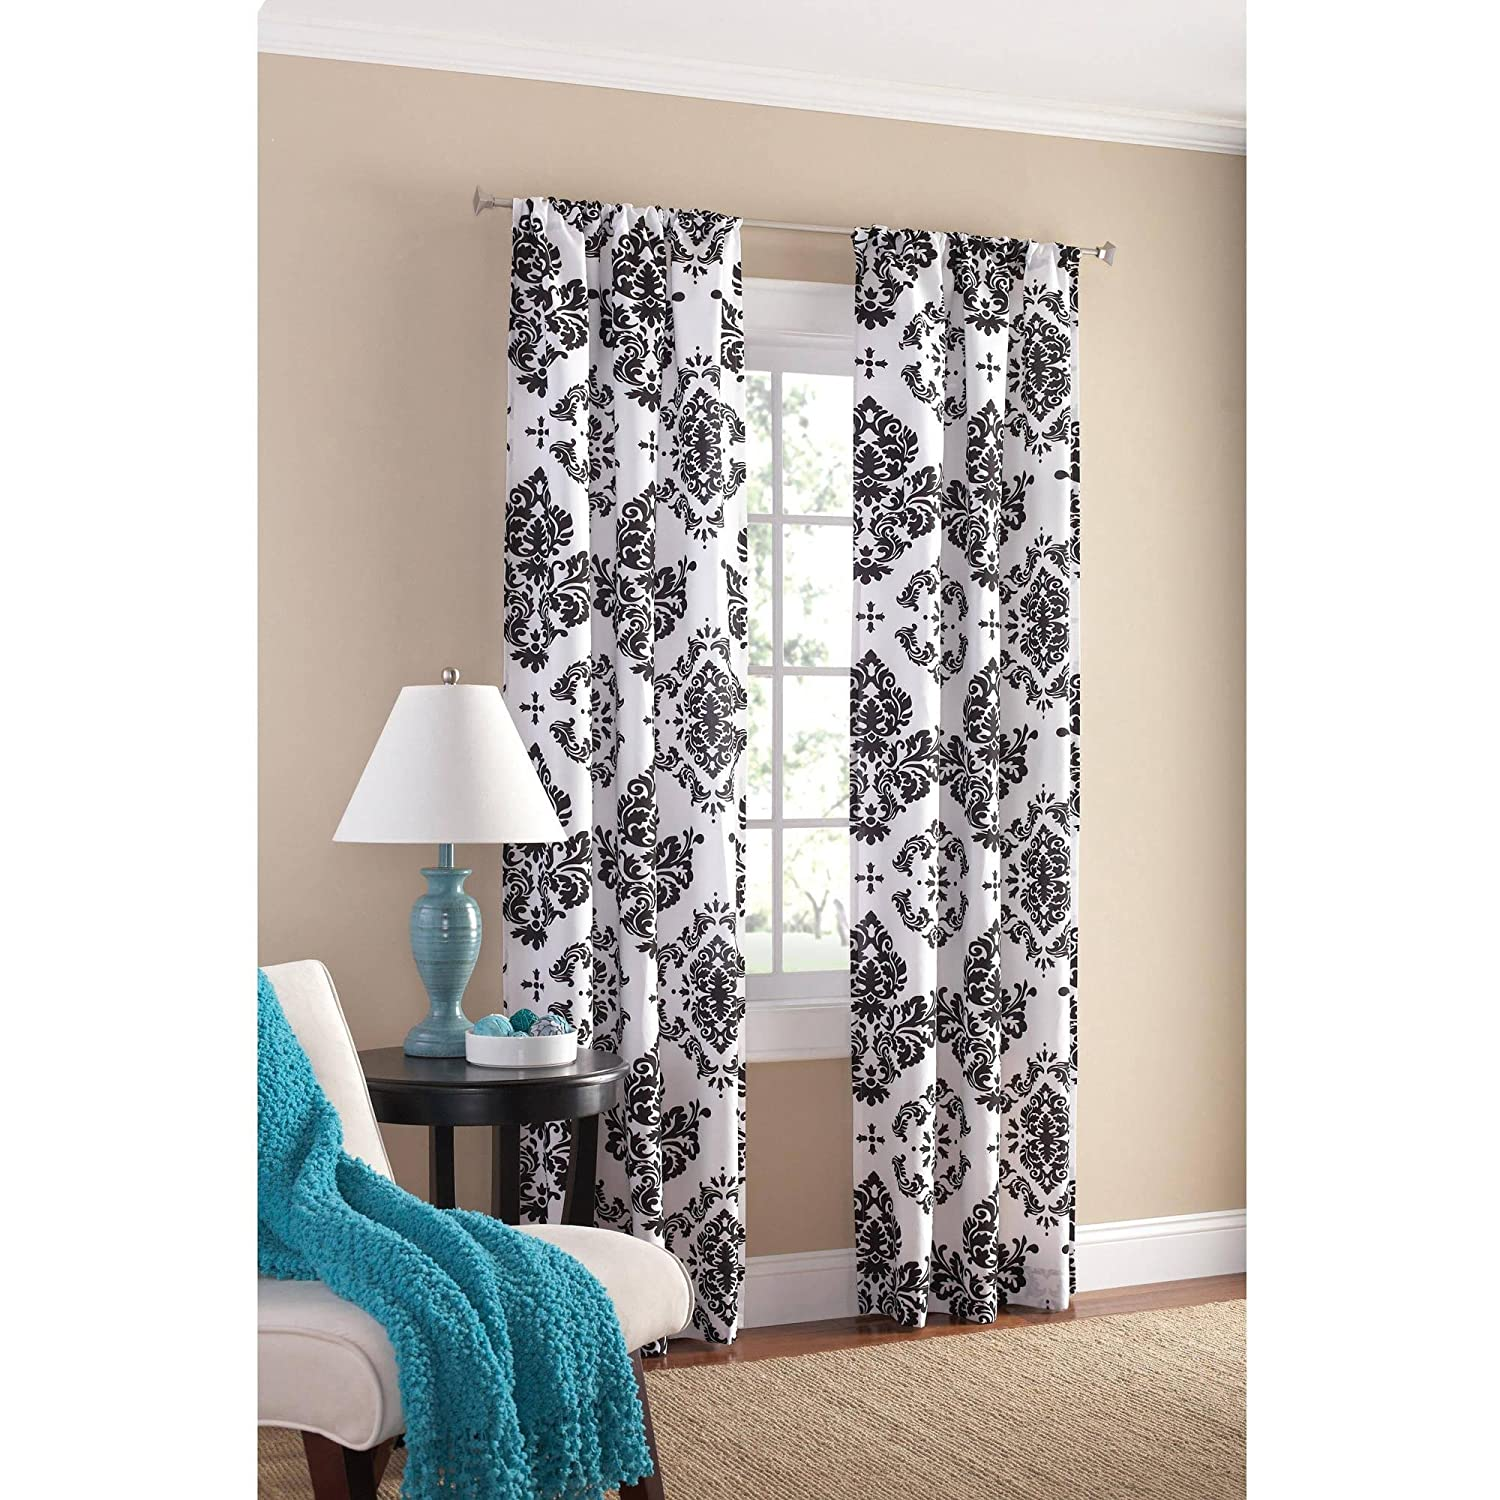 short white livingroom bath blackout panels ideas black dark light bed beyond and curtains glamorous with full drapes size curtain walls decorating walmart of